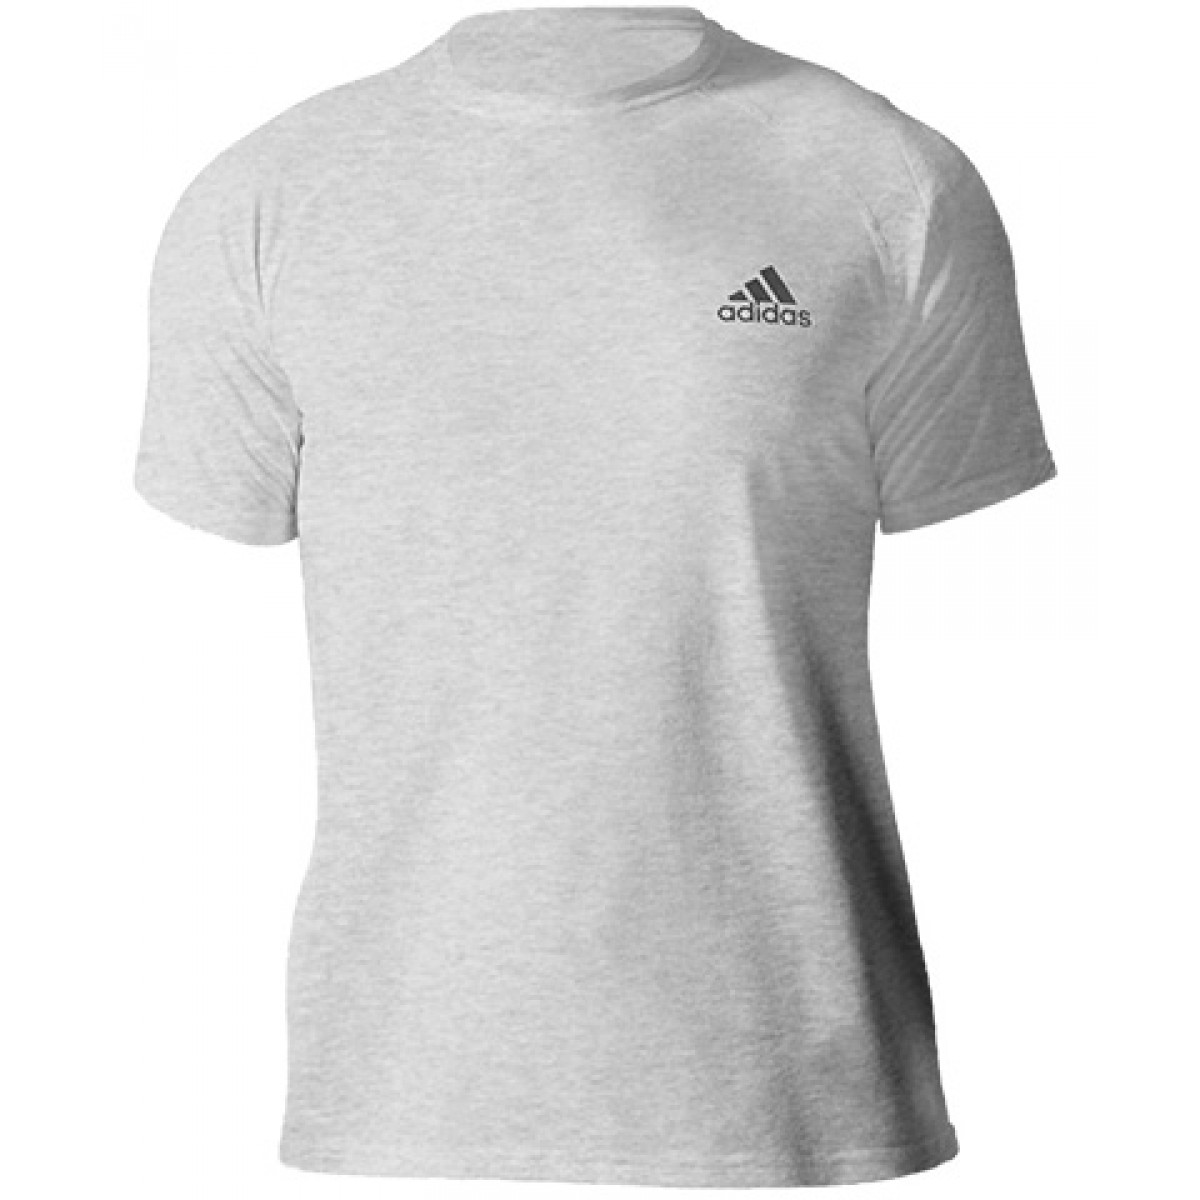 Adidas Embroidered Logo Essential Crew Neck T-shirt-Sports Grey-L